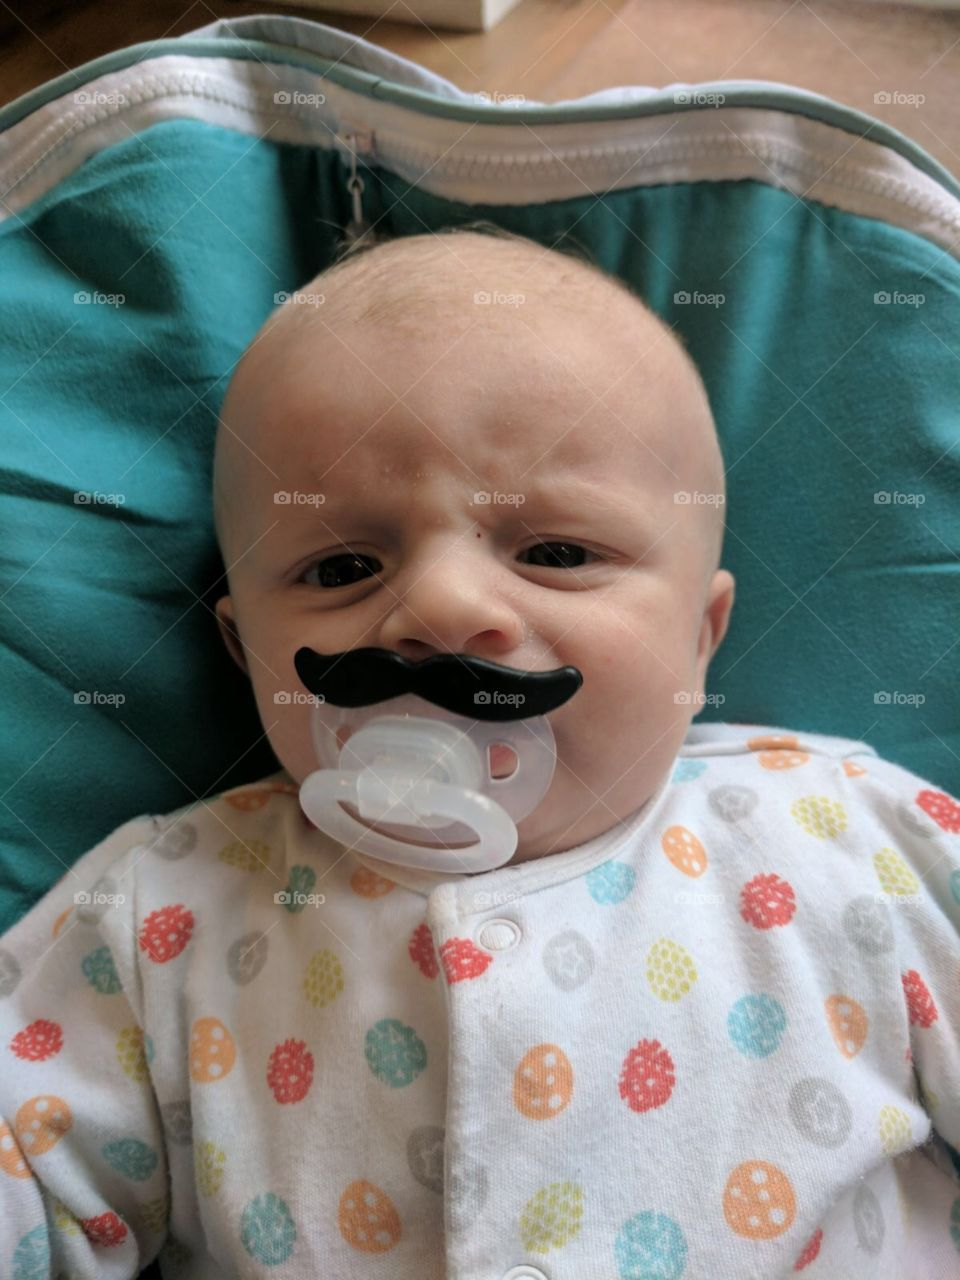 Baby Oliver angry with a moustache